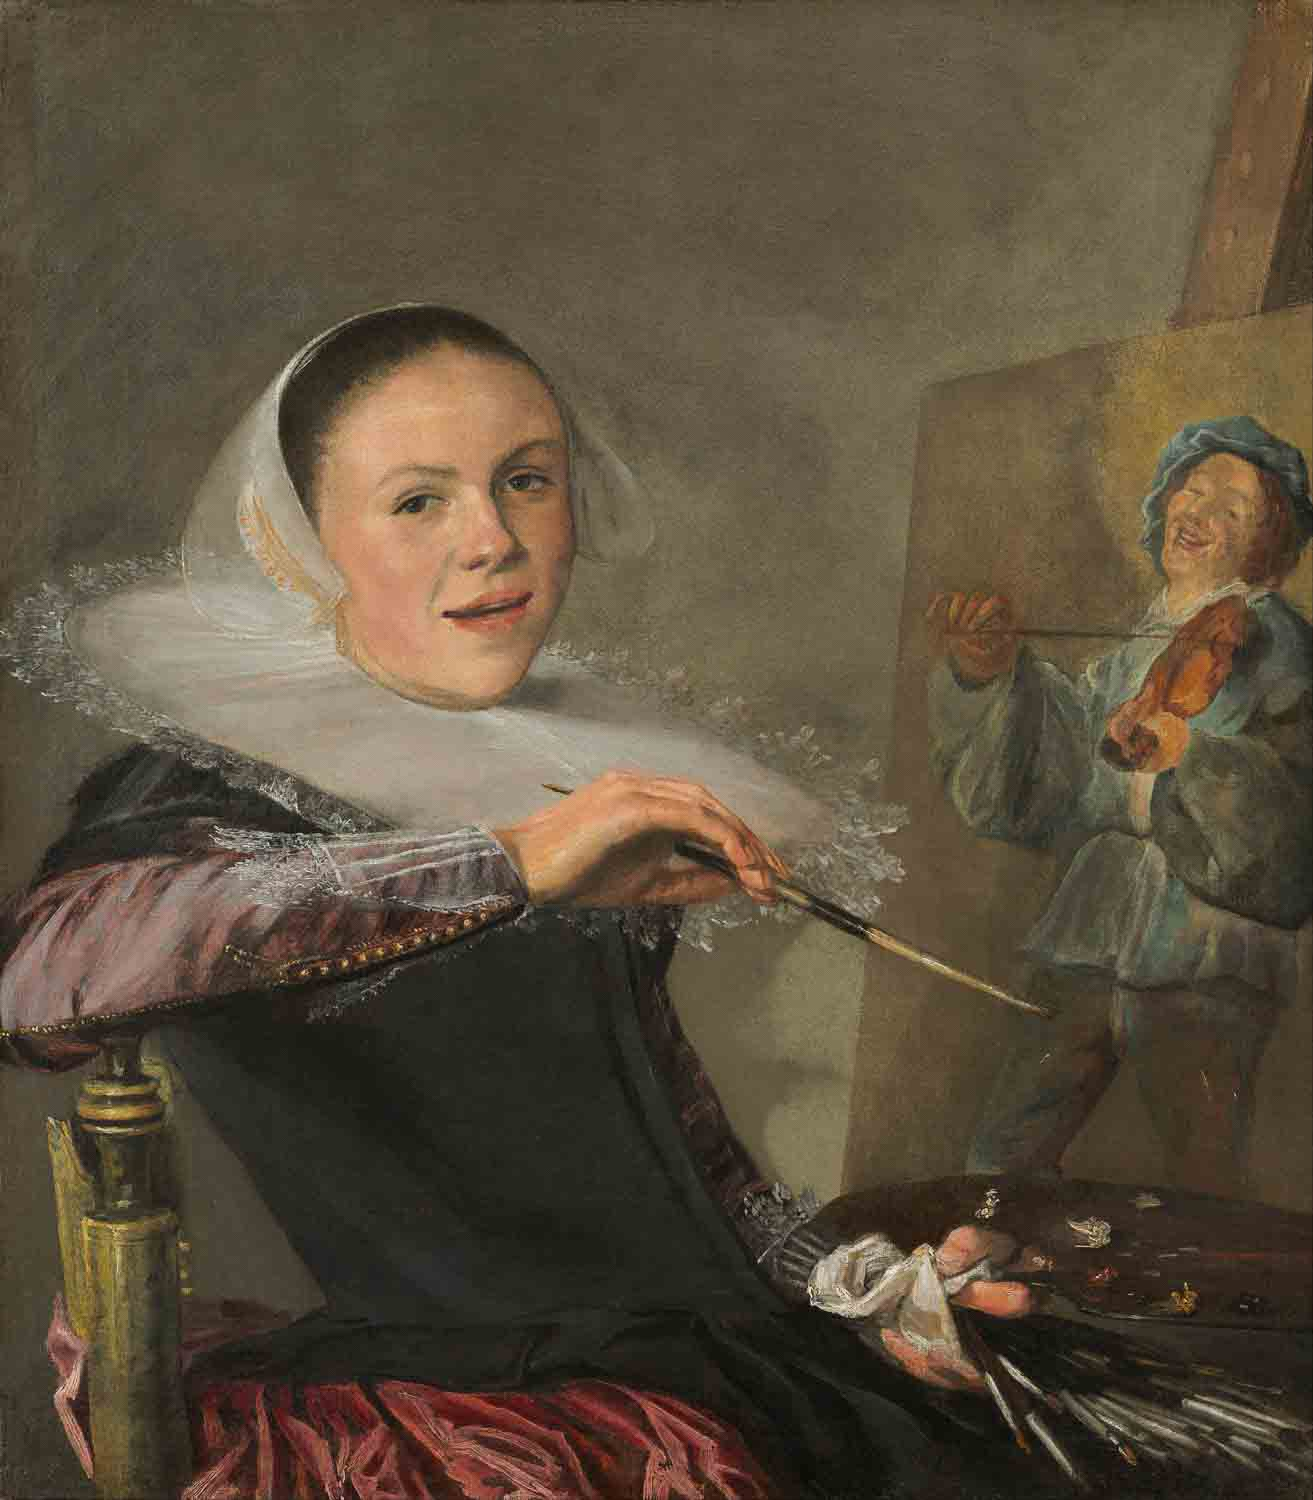 Judith Leyster, Self Portrait, National Gallery of Art Washington